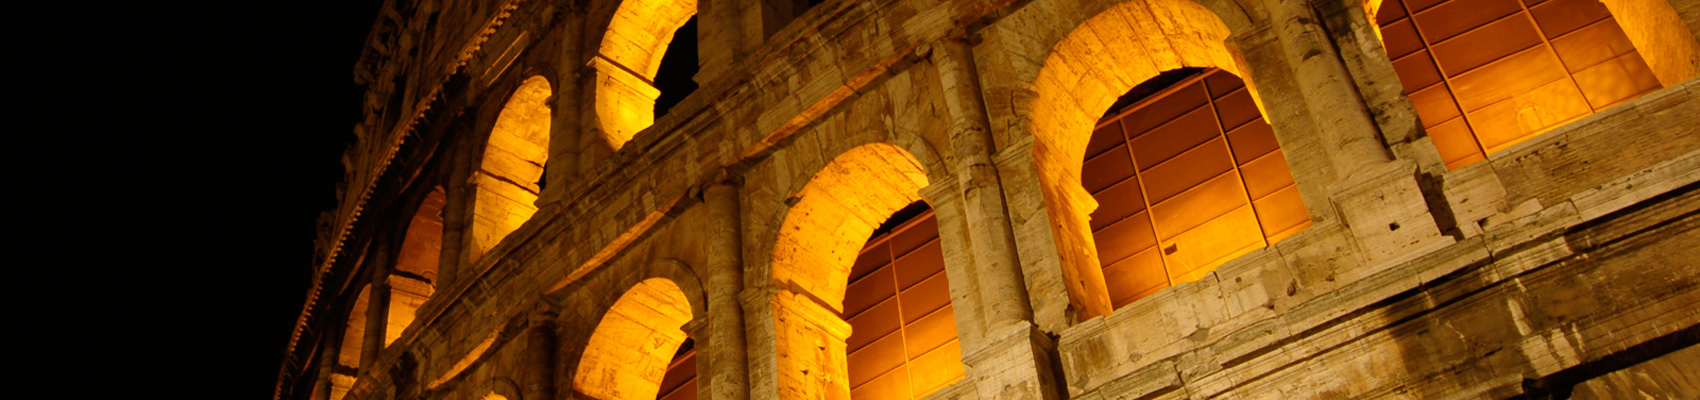 colosseum lit up at night under gold lights